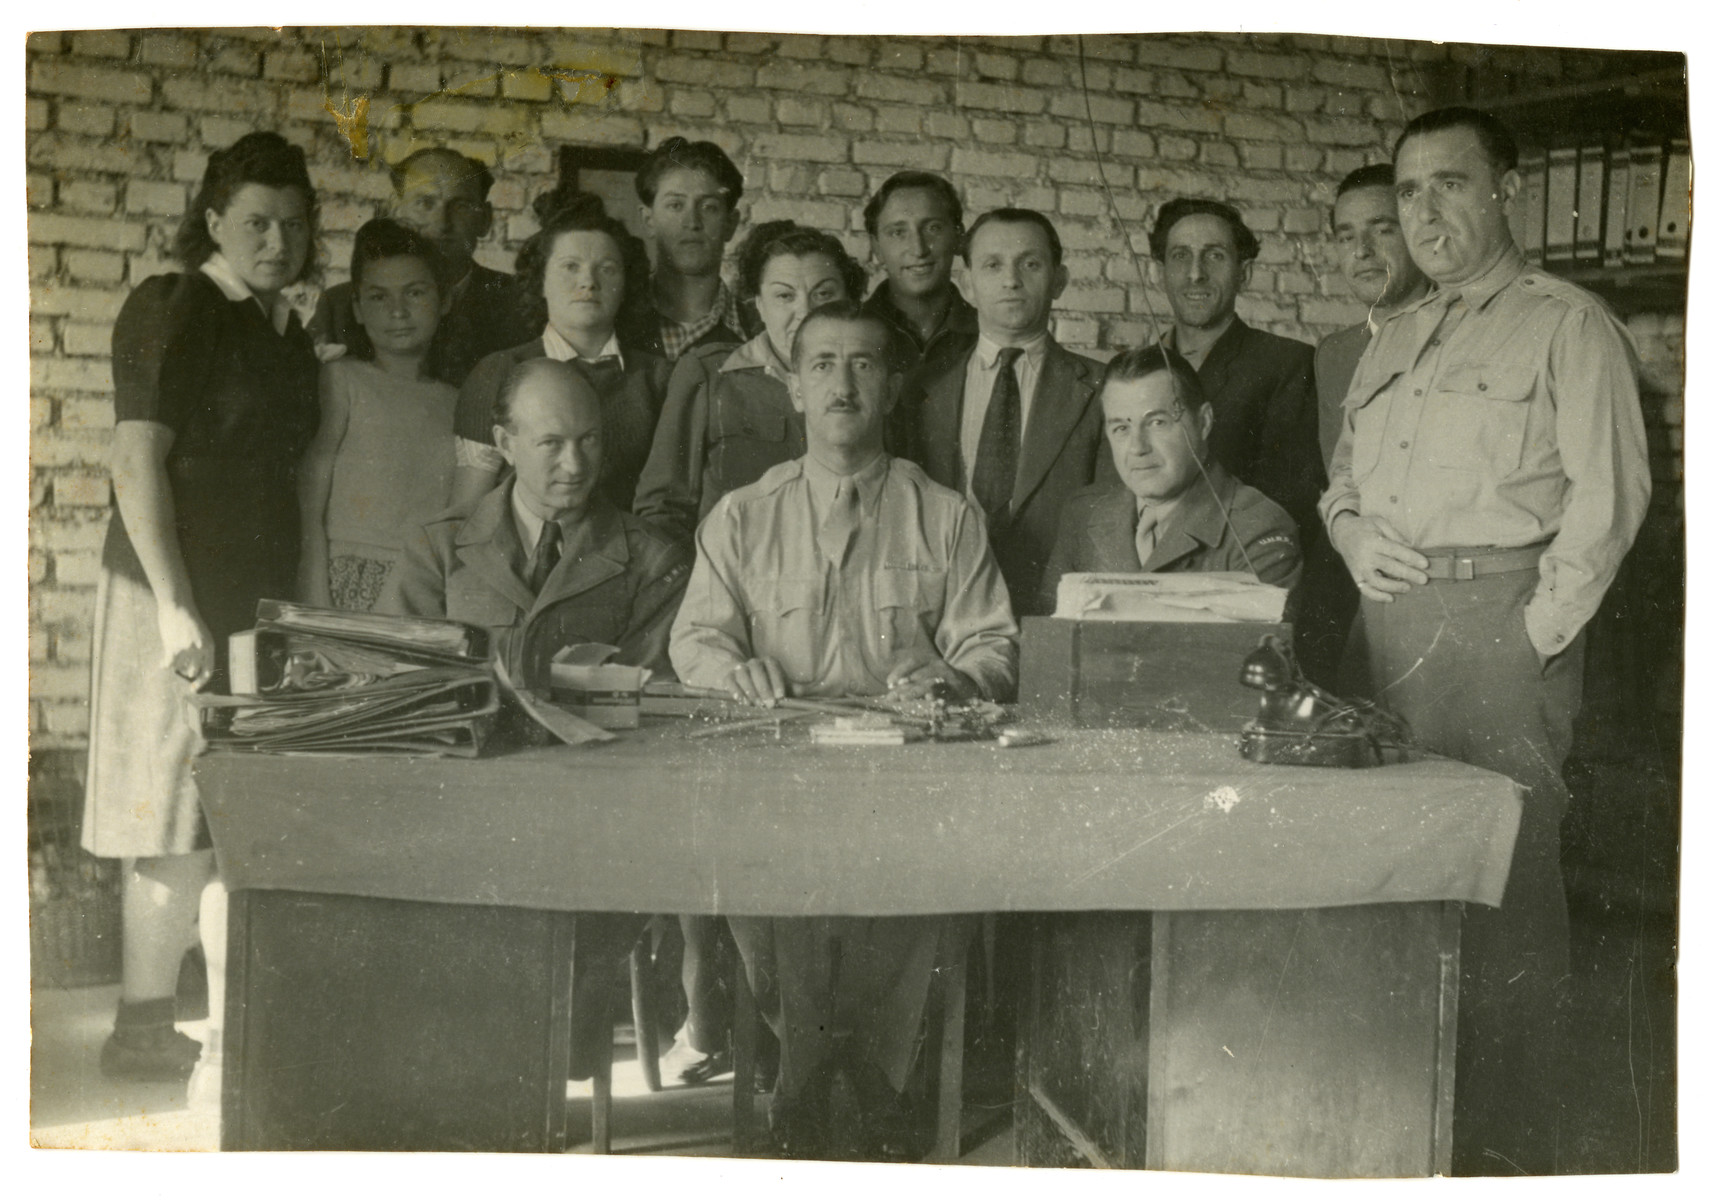 Administrative office of the Feldafing displaced persons camp.  Leib Szapiro is pictured third from the right.